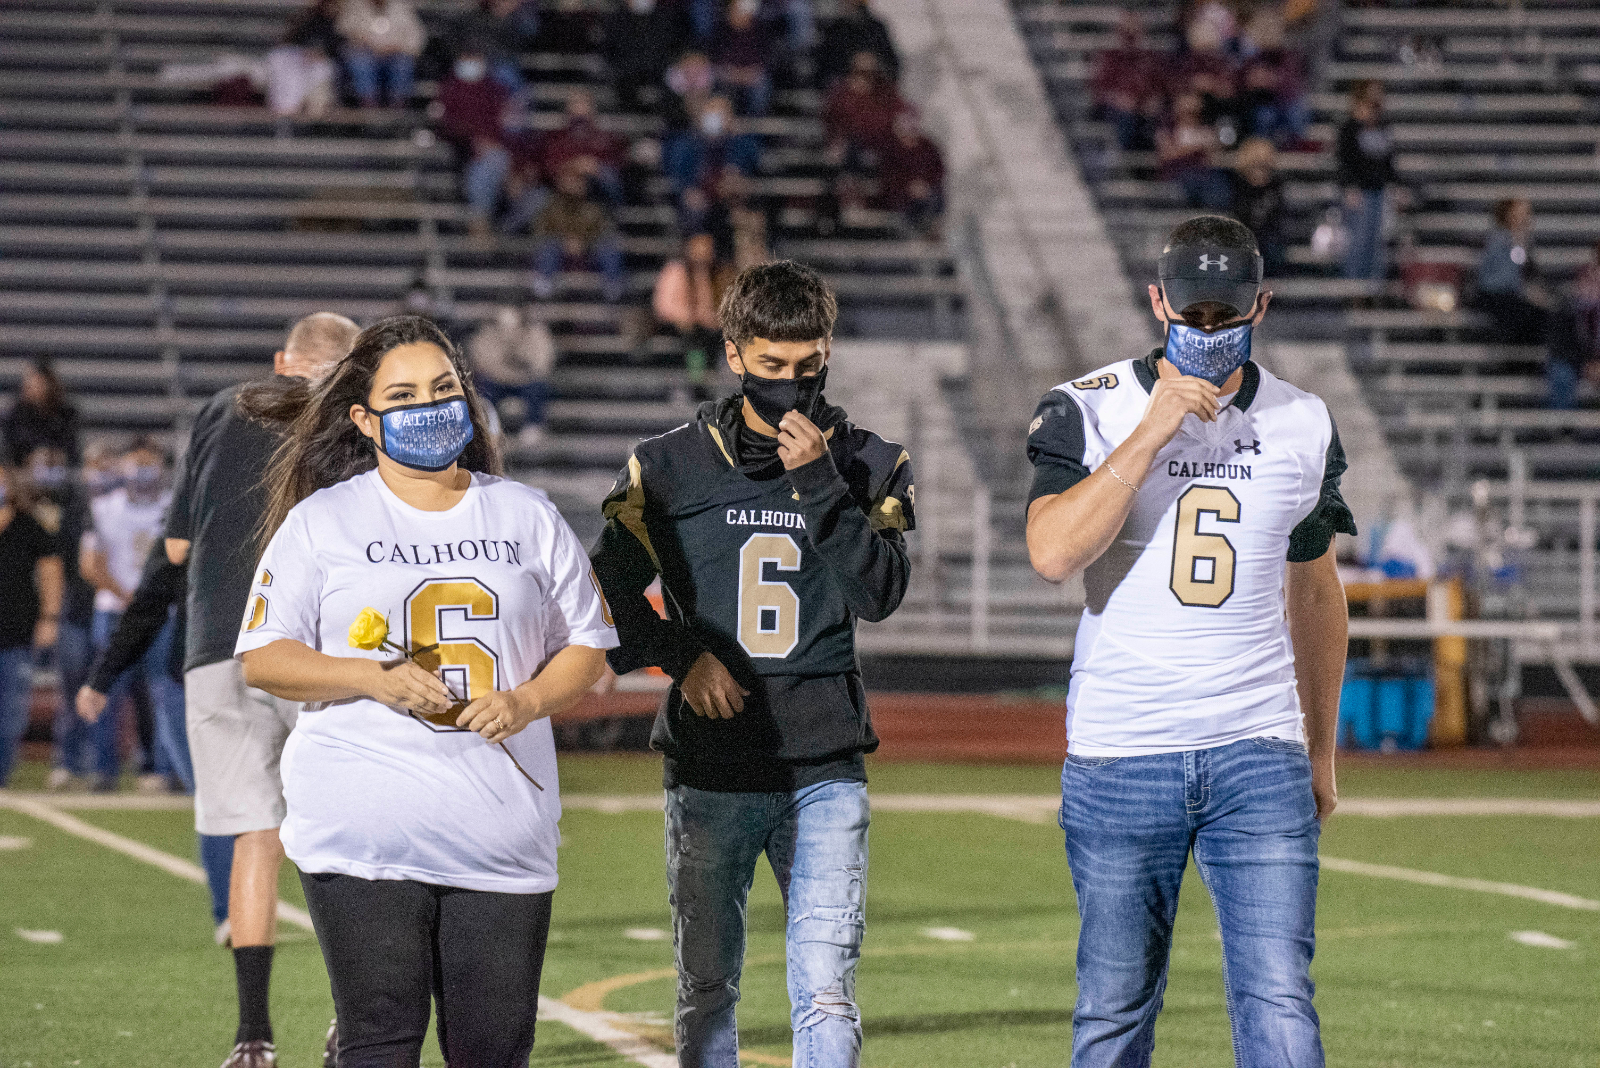 Football/trainers parents night